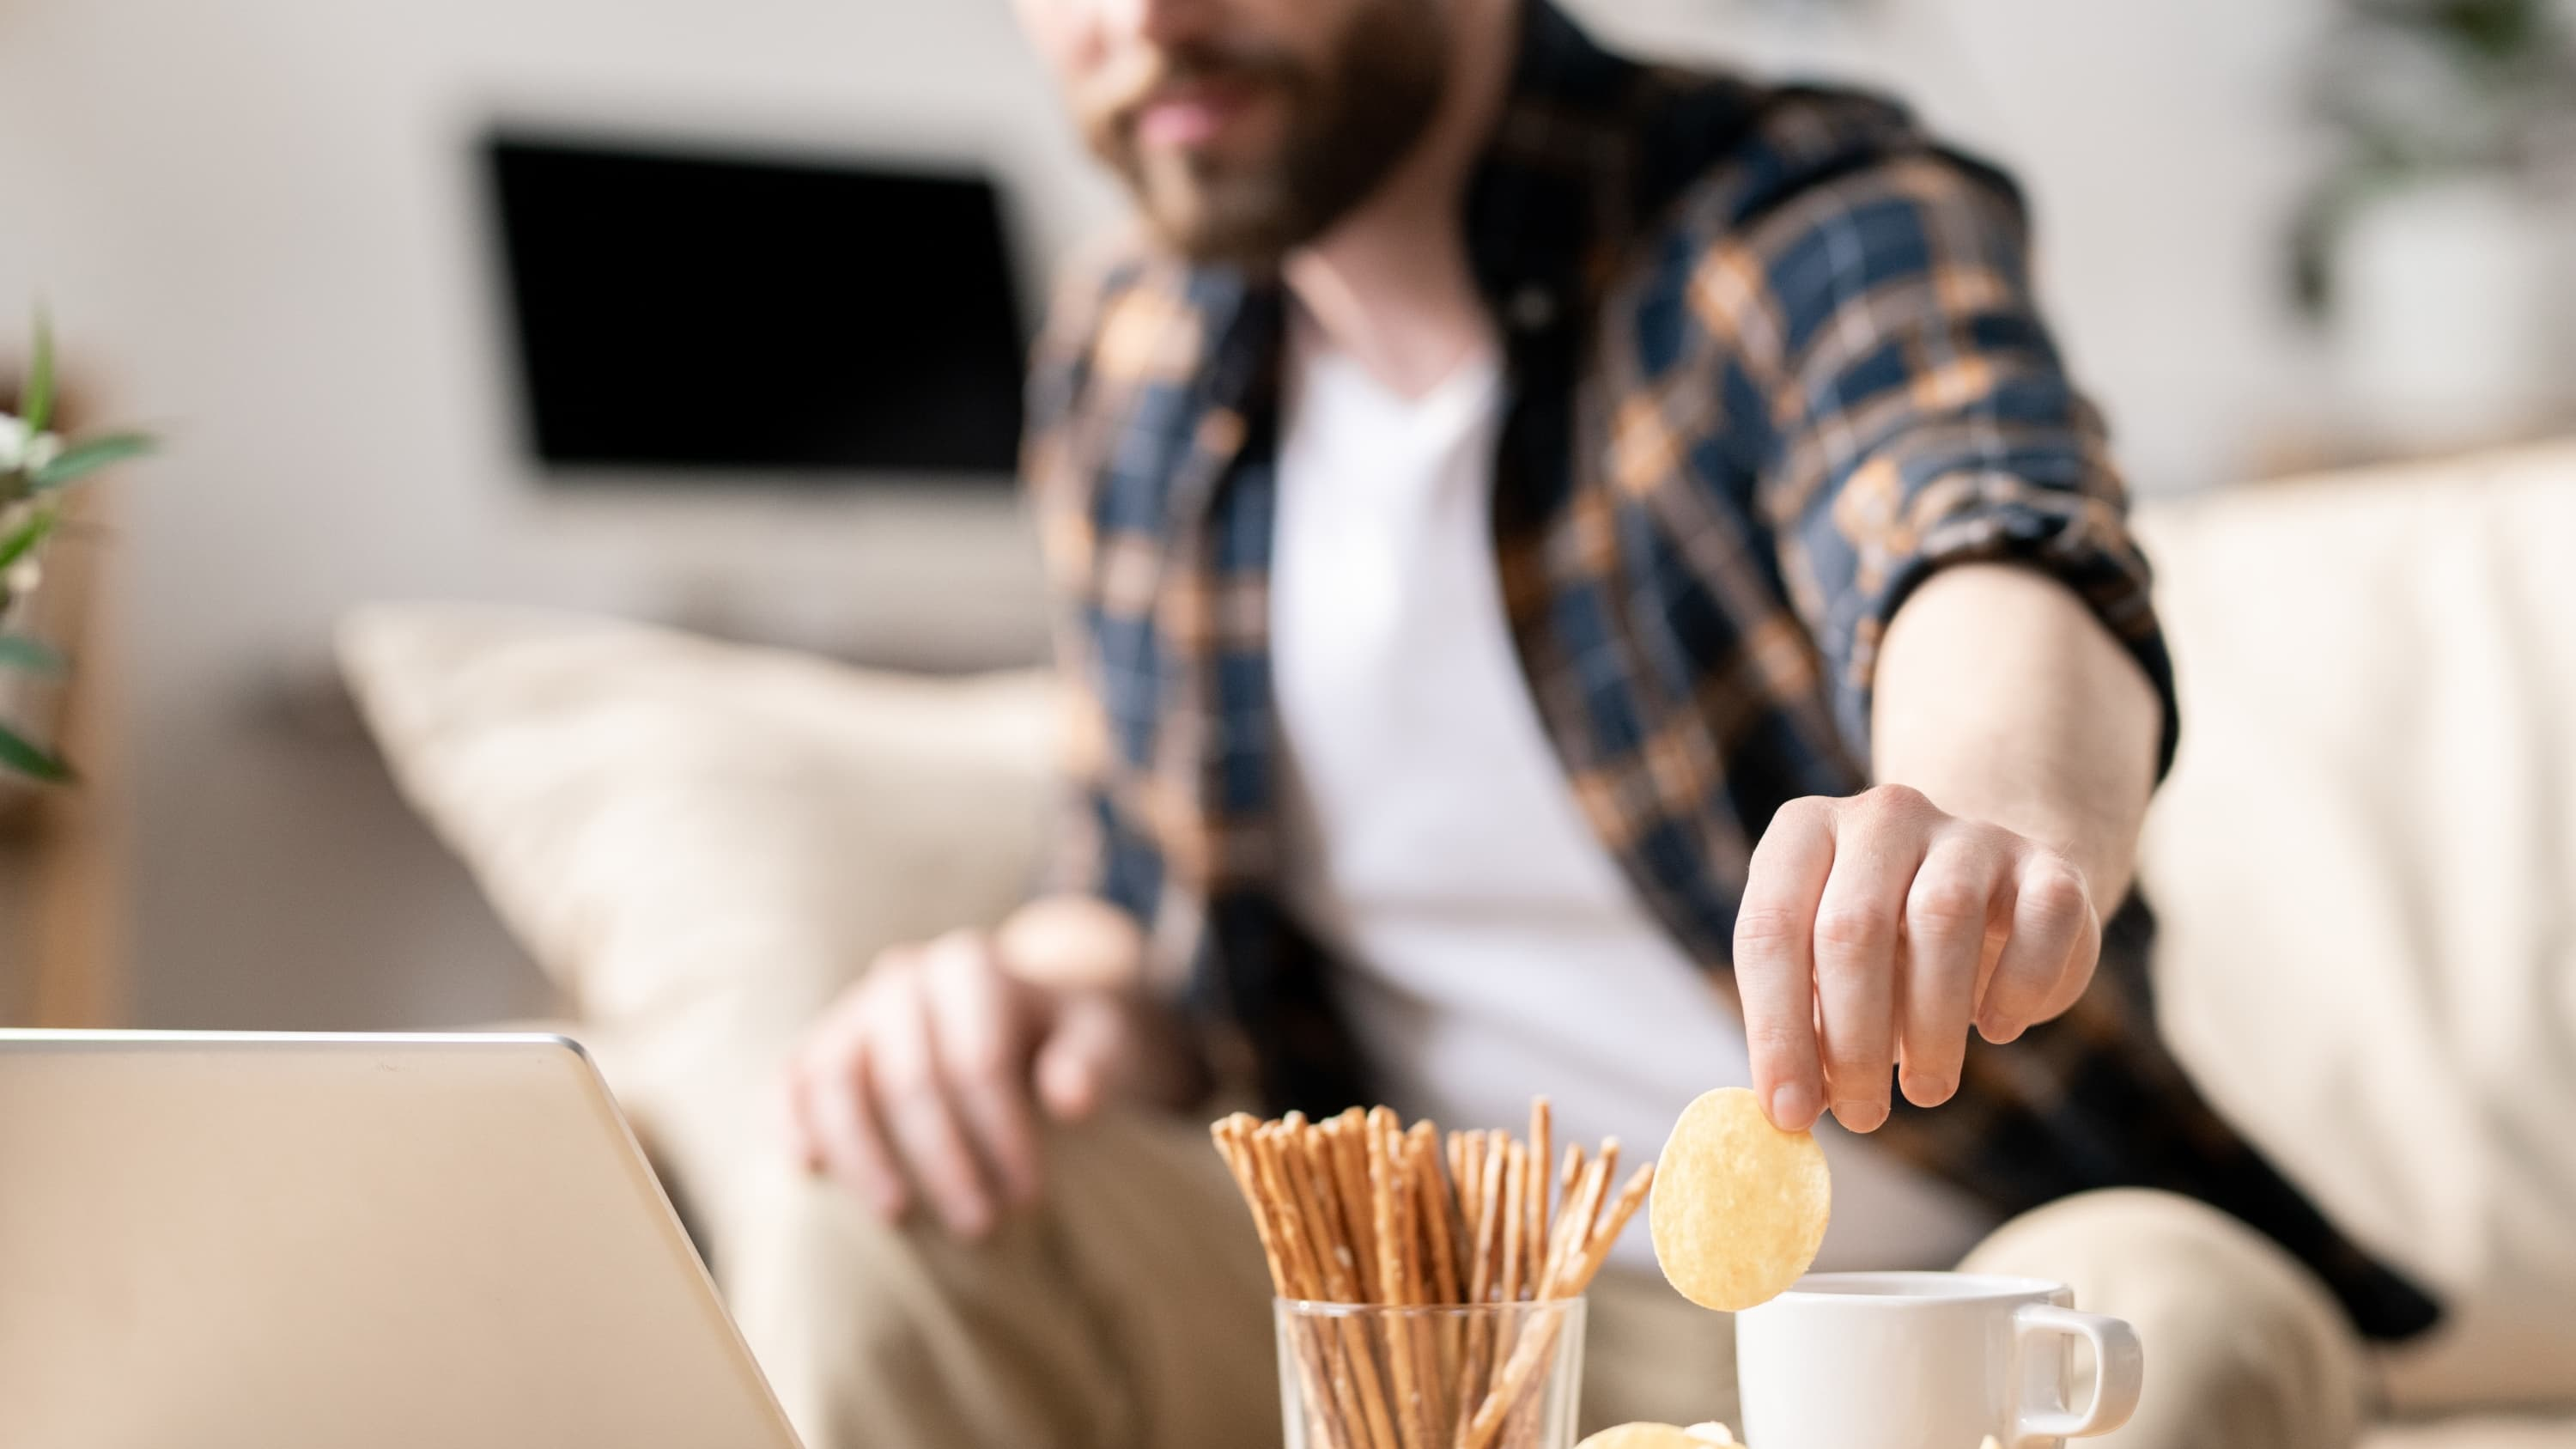 Man snacking, possibly in response to anxiety related to the COVID-19 pandemic